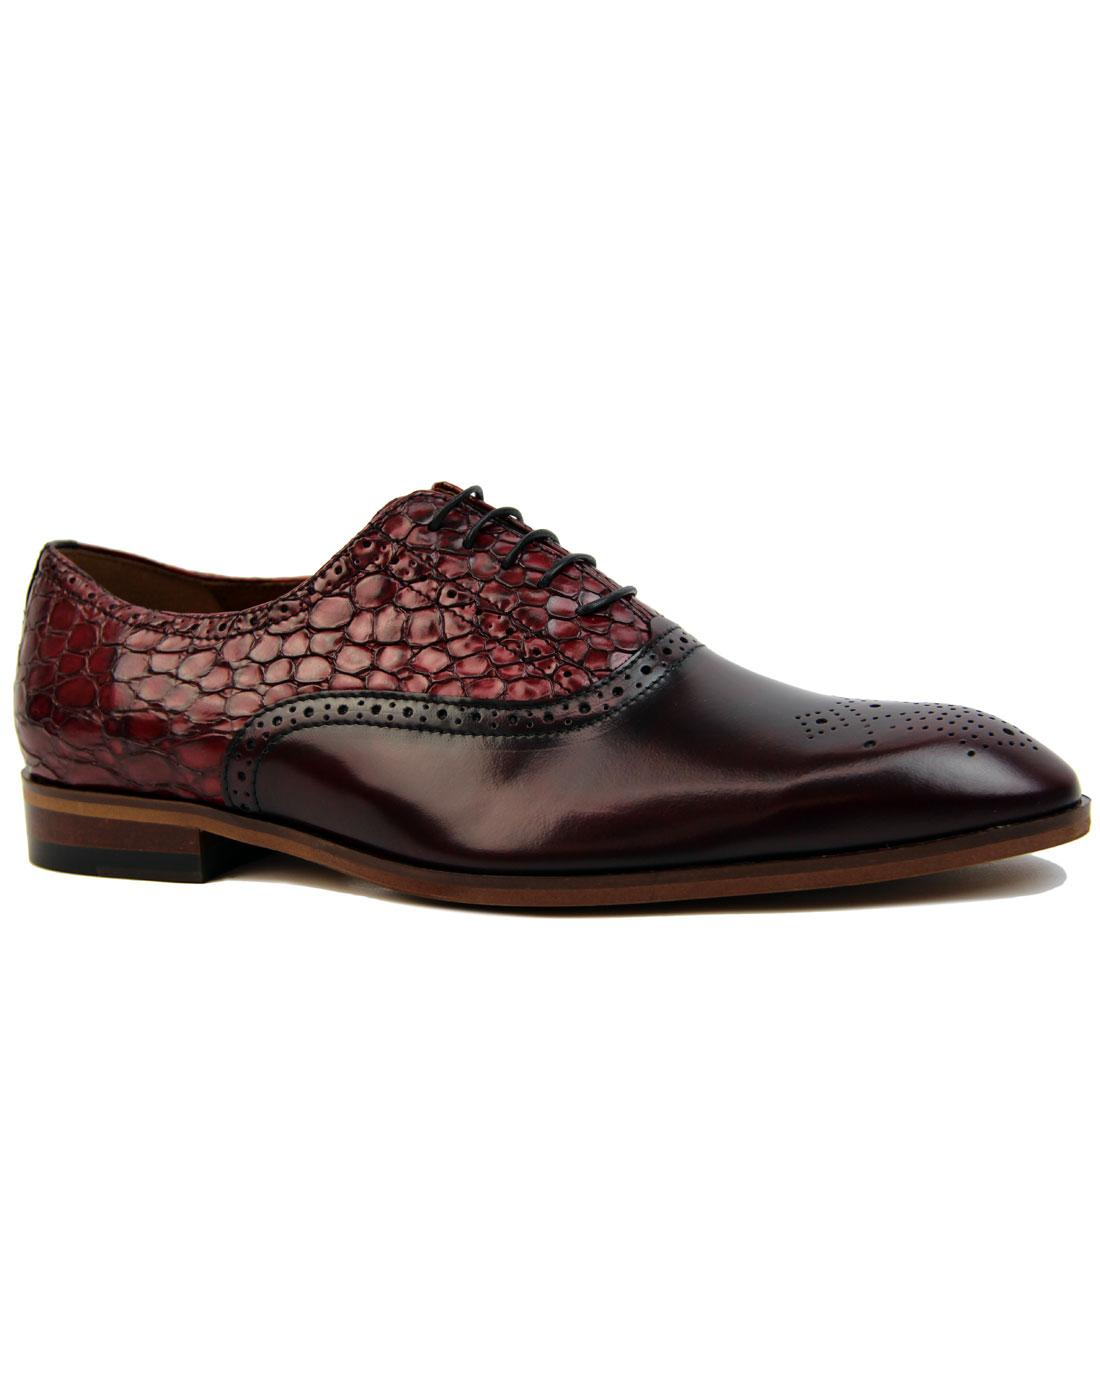 Sirhiss LACUZZO Retro Mod Snake Stamp Shoes CLARET